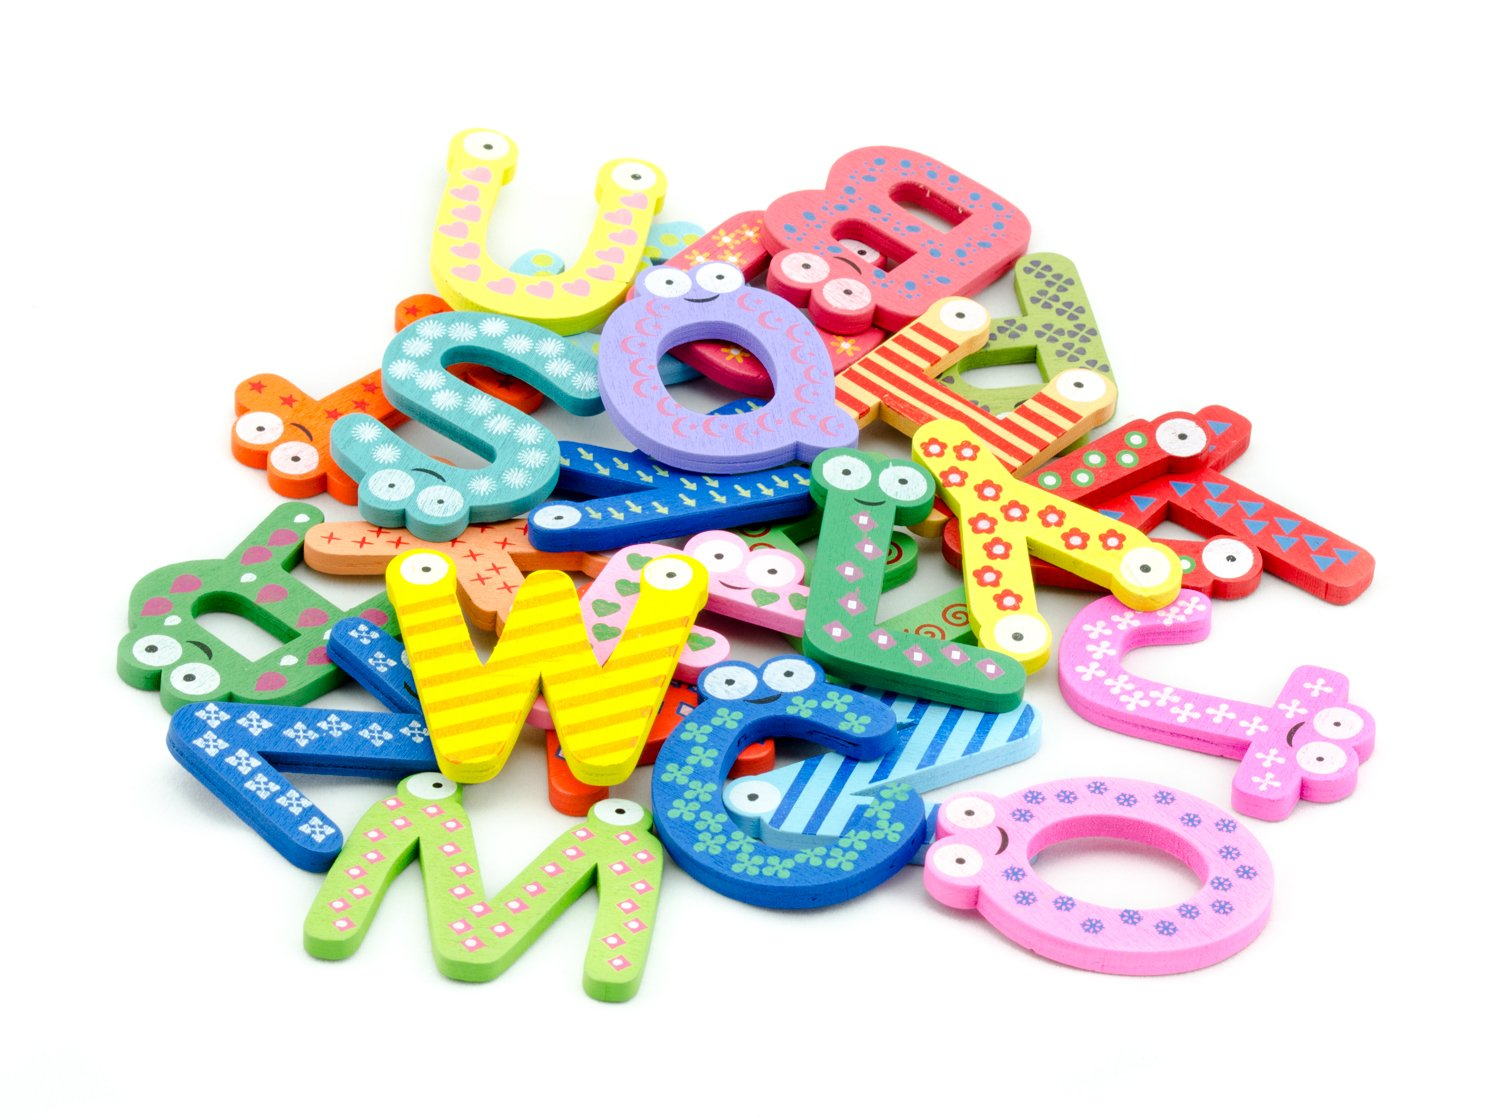 Tinxs Funky Fun Colorful Magnetic Letters A-Z Wooden Fridge Magnets Kid toys Education HO-47